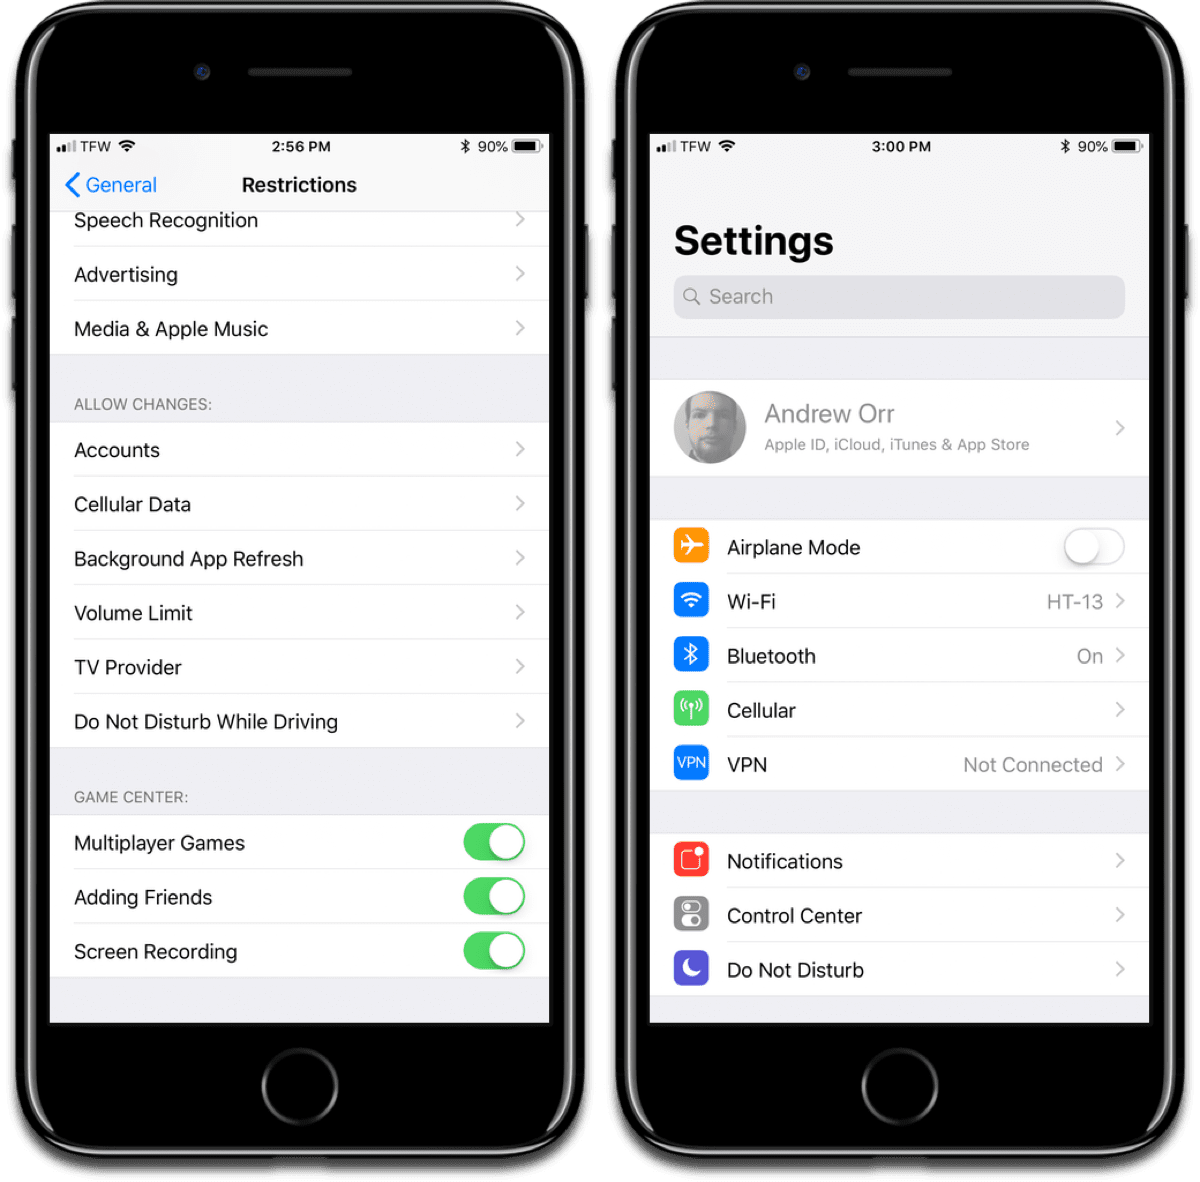 Screenshots of iOS Restrictions on the iPhone.